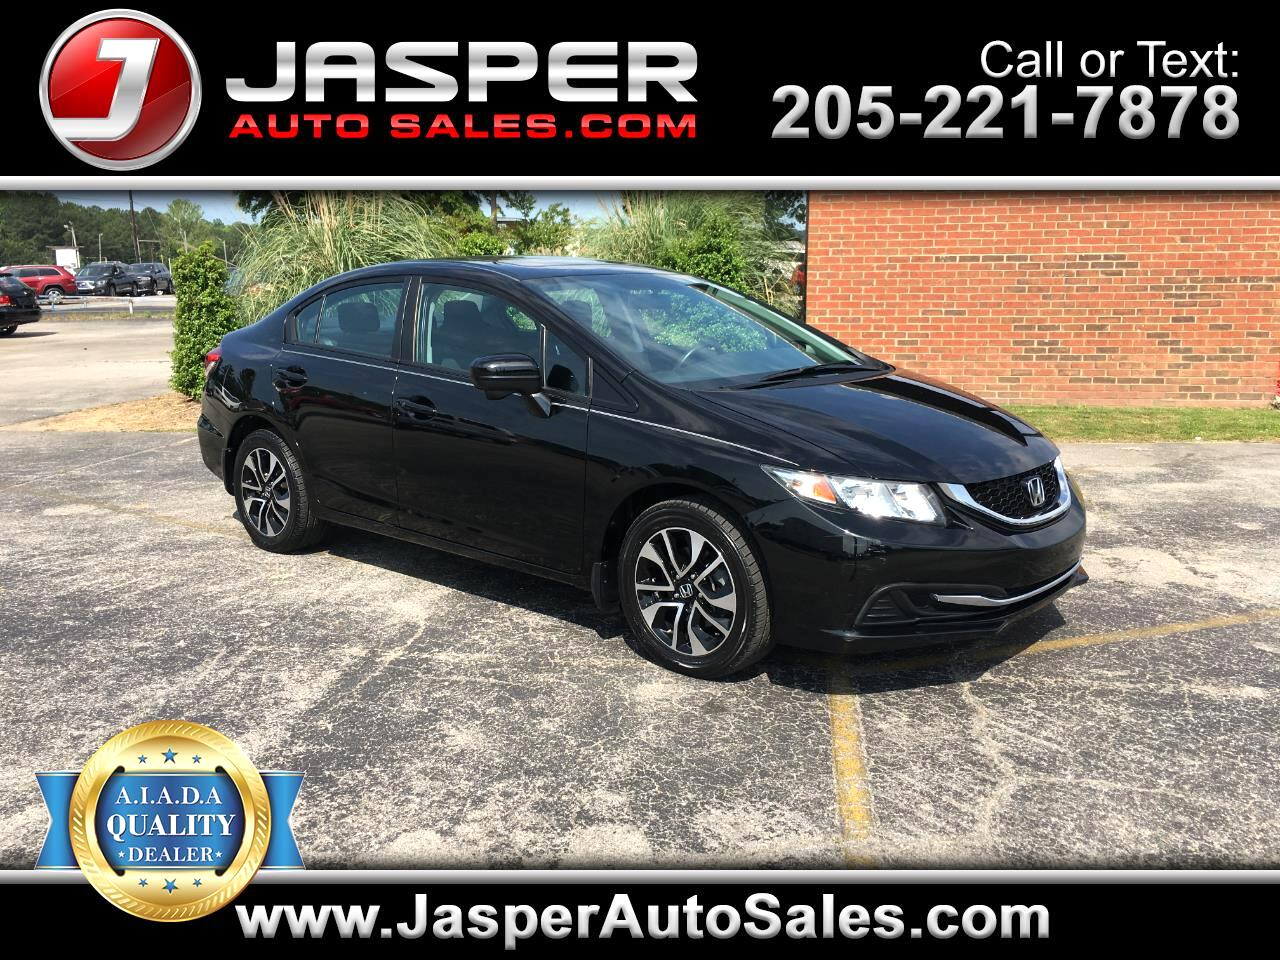 2014 Honda Civic Sedan 4dr CVT EX